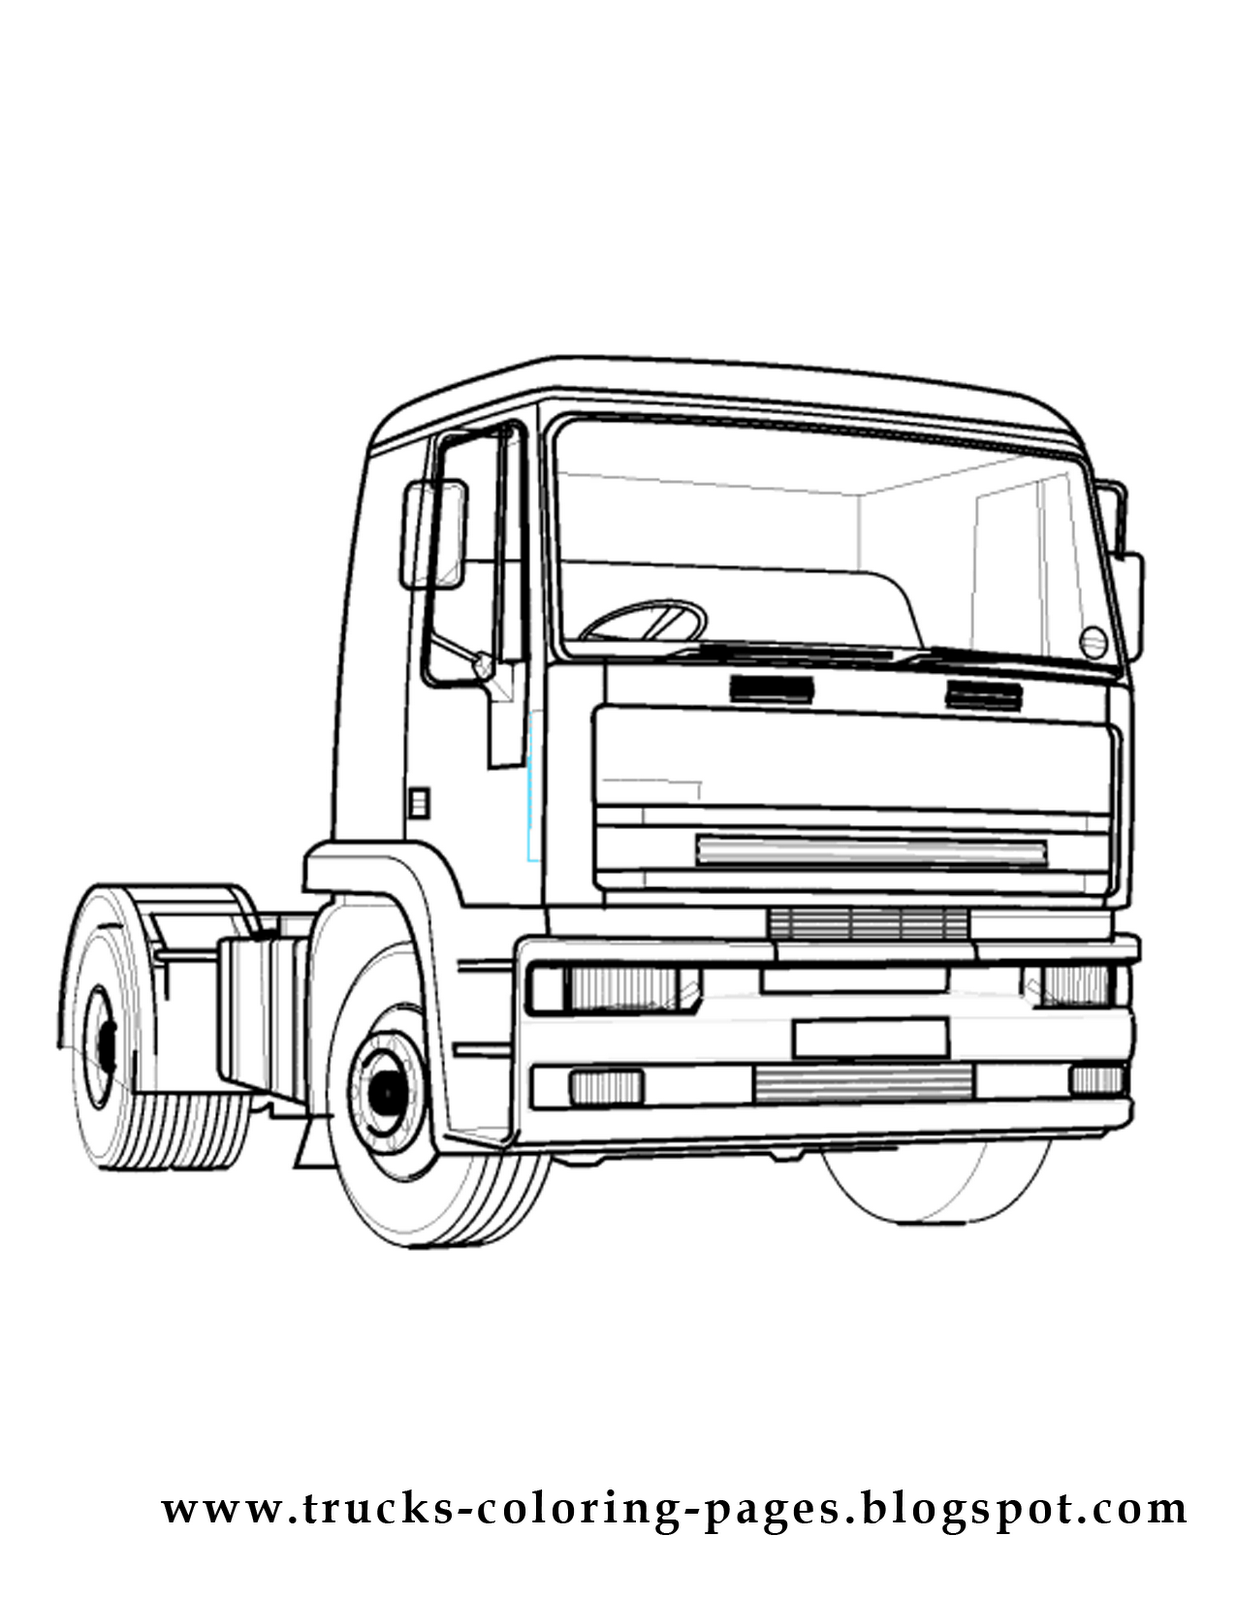 Trucks Coloring Pages: More Trucks Coloring Pages